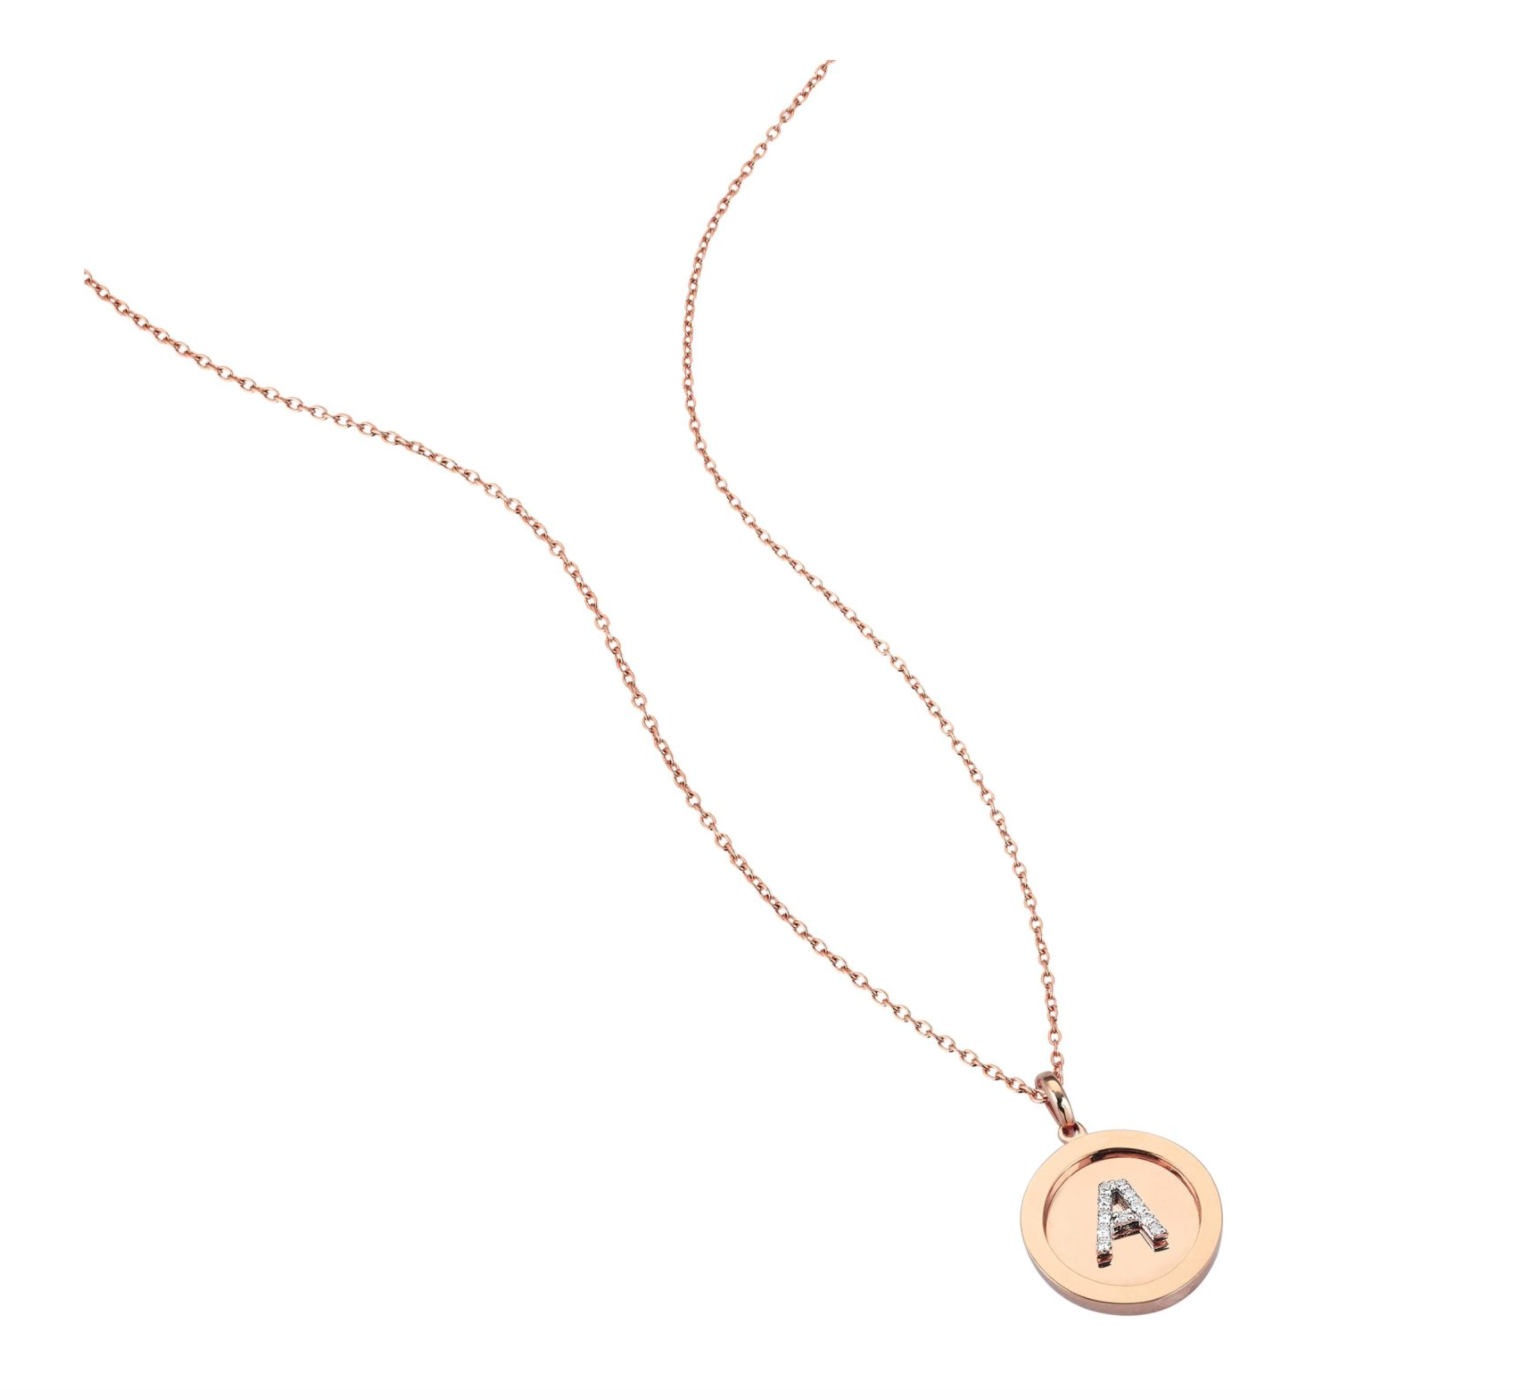 Initial Necklace – A